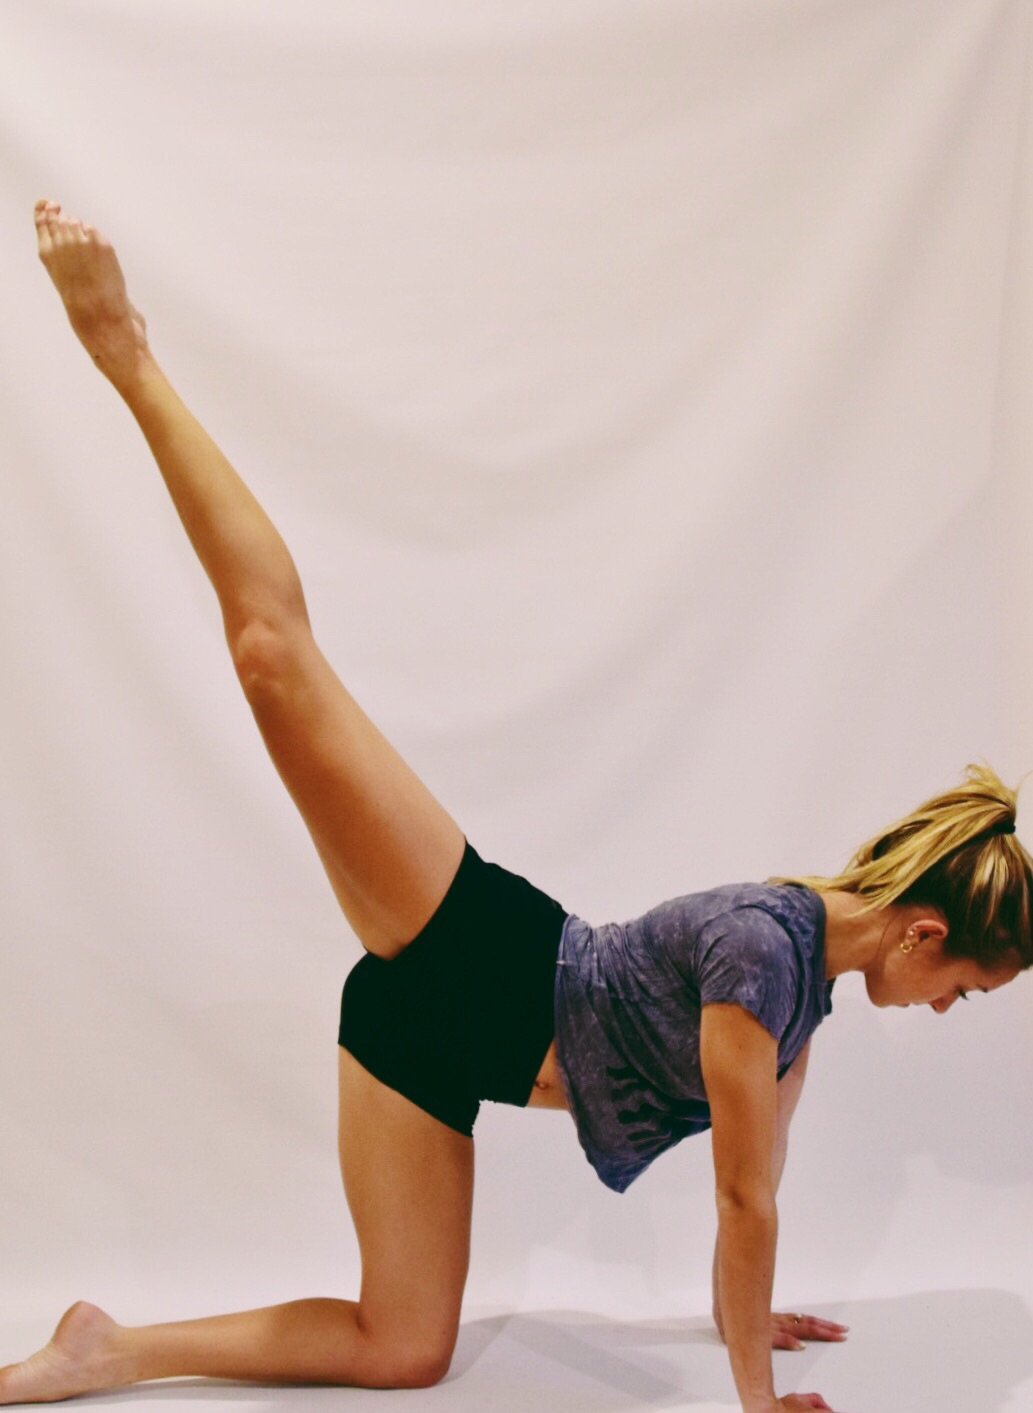 start with knee bent in and extend up to this position (however high or low it may be)